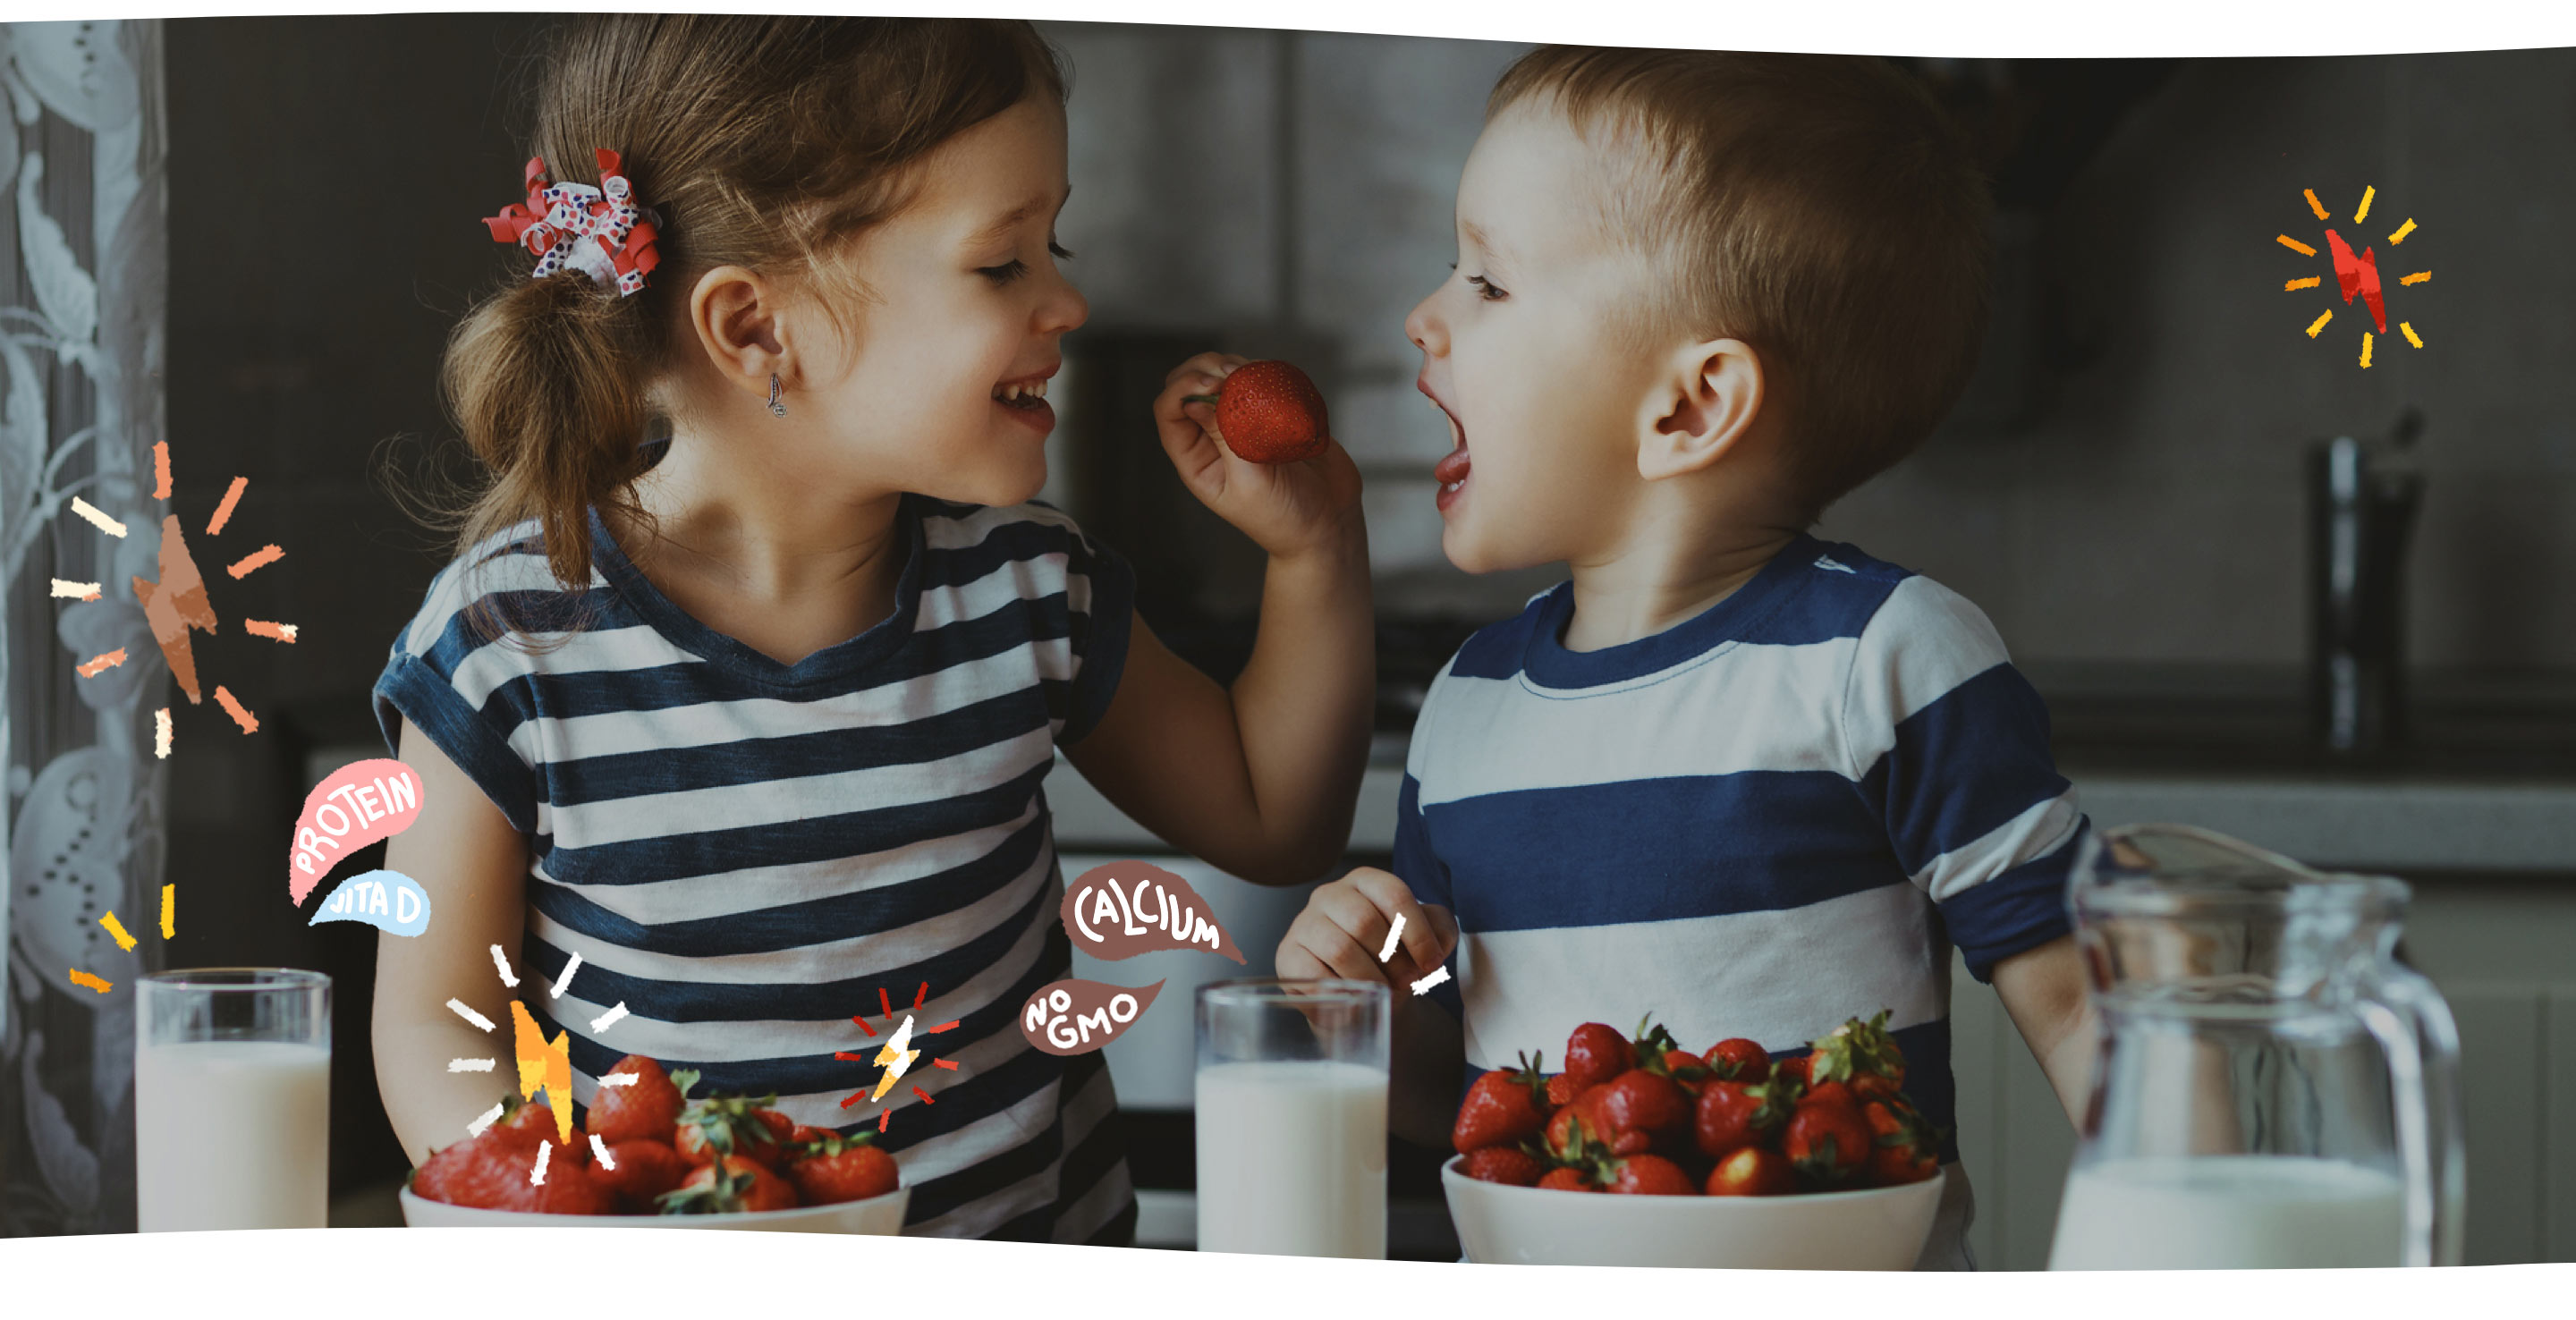 girl feeding strawberry to boy